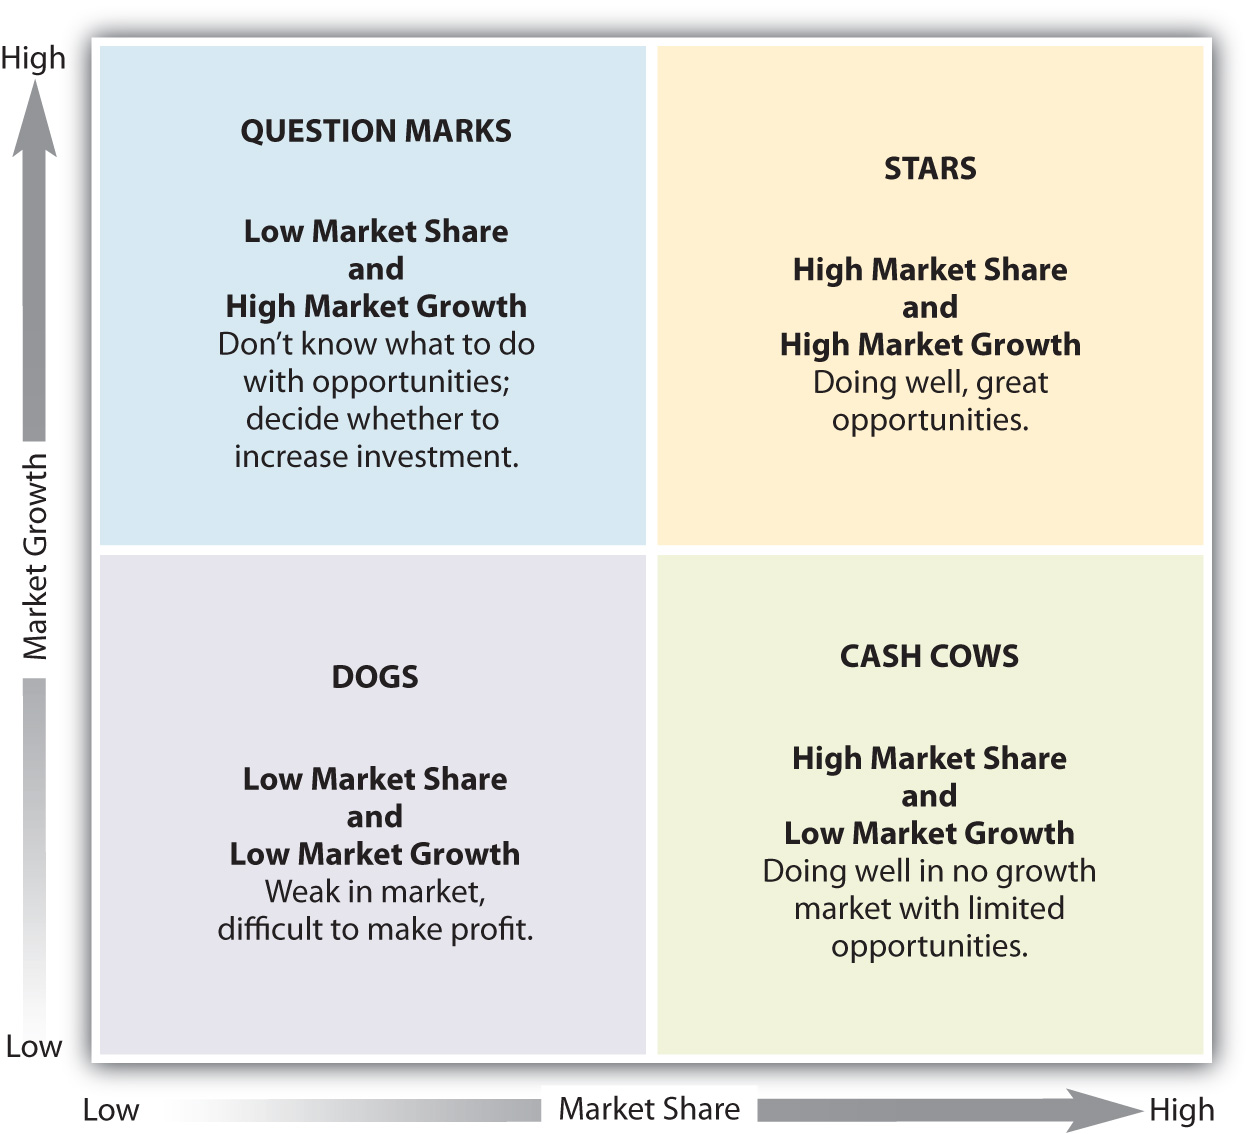 The Boston Consulting Group Matrix